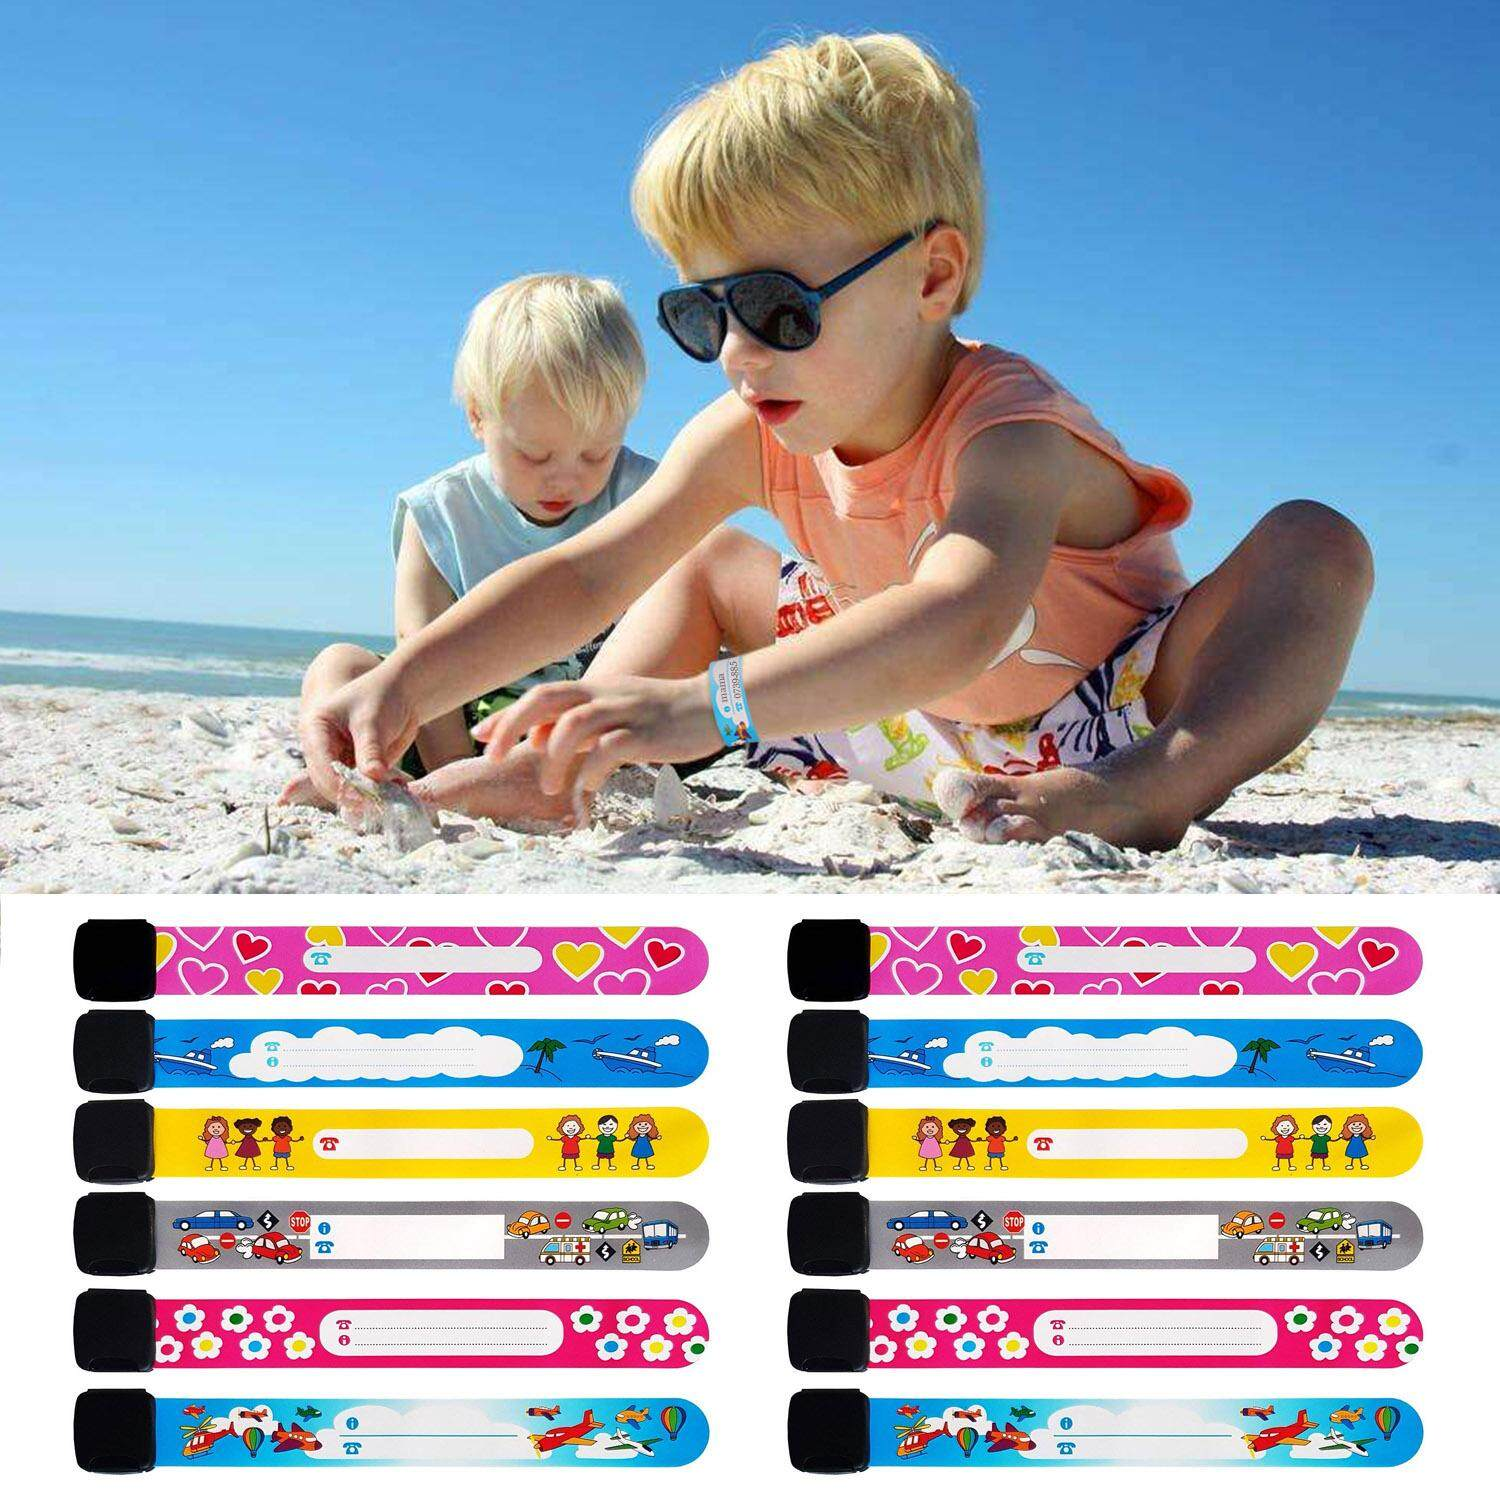 12pcs Colorful Adjustable Reusable Waterproof Child Anti Lost Wristband Id Emergency Contact Link Safety Bracelet With Buckle For Kids Outdoor Safety Random Style By Elek.